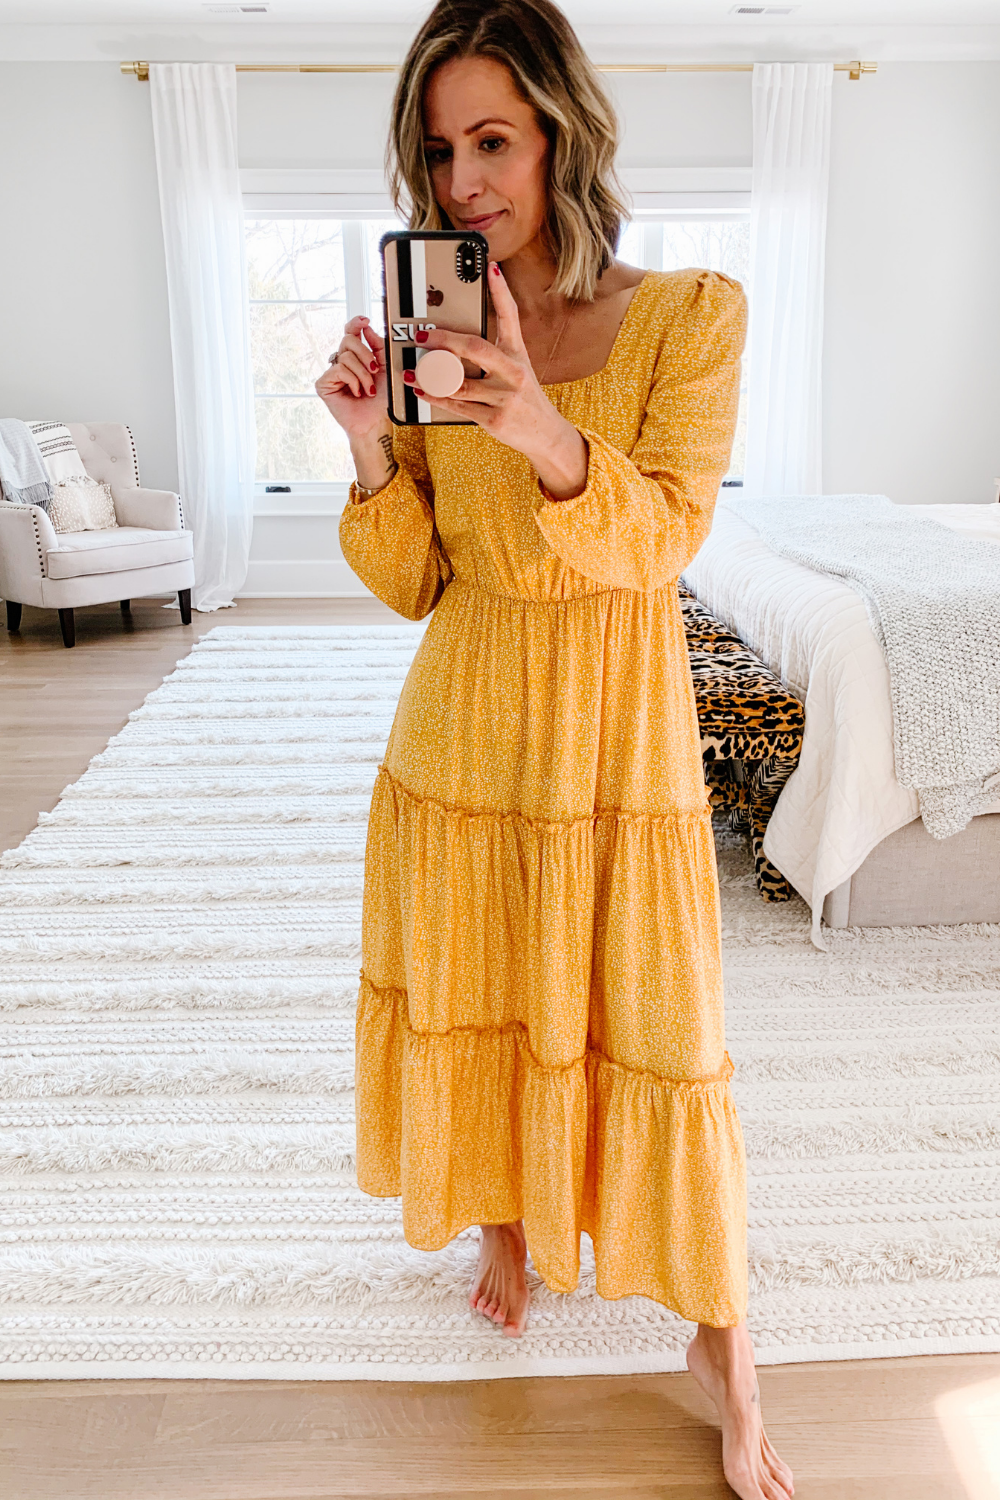 Summer to fall style: maxi dress